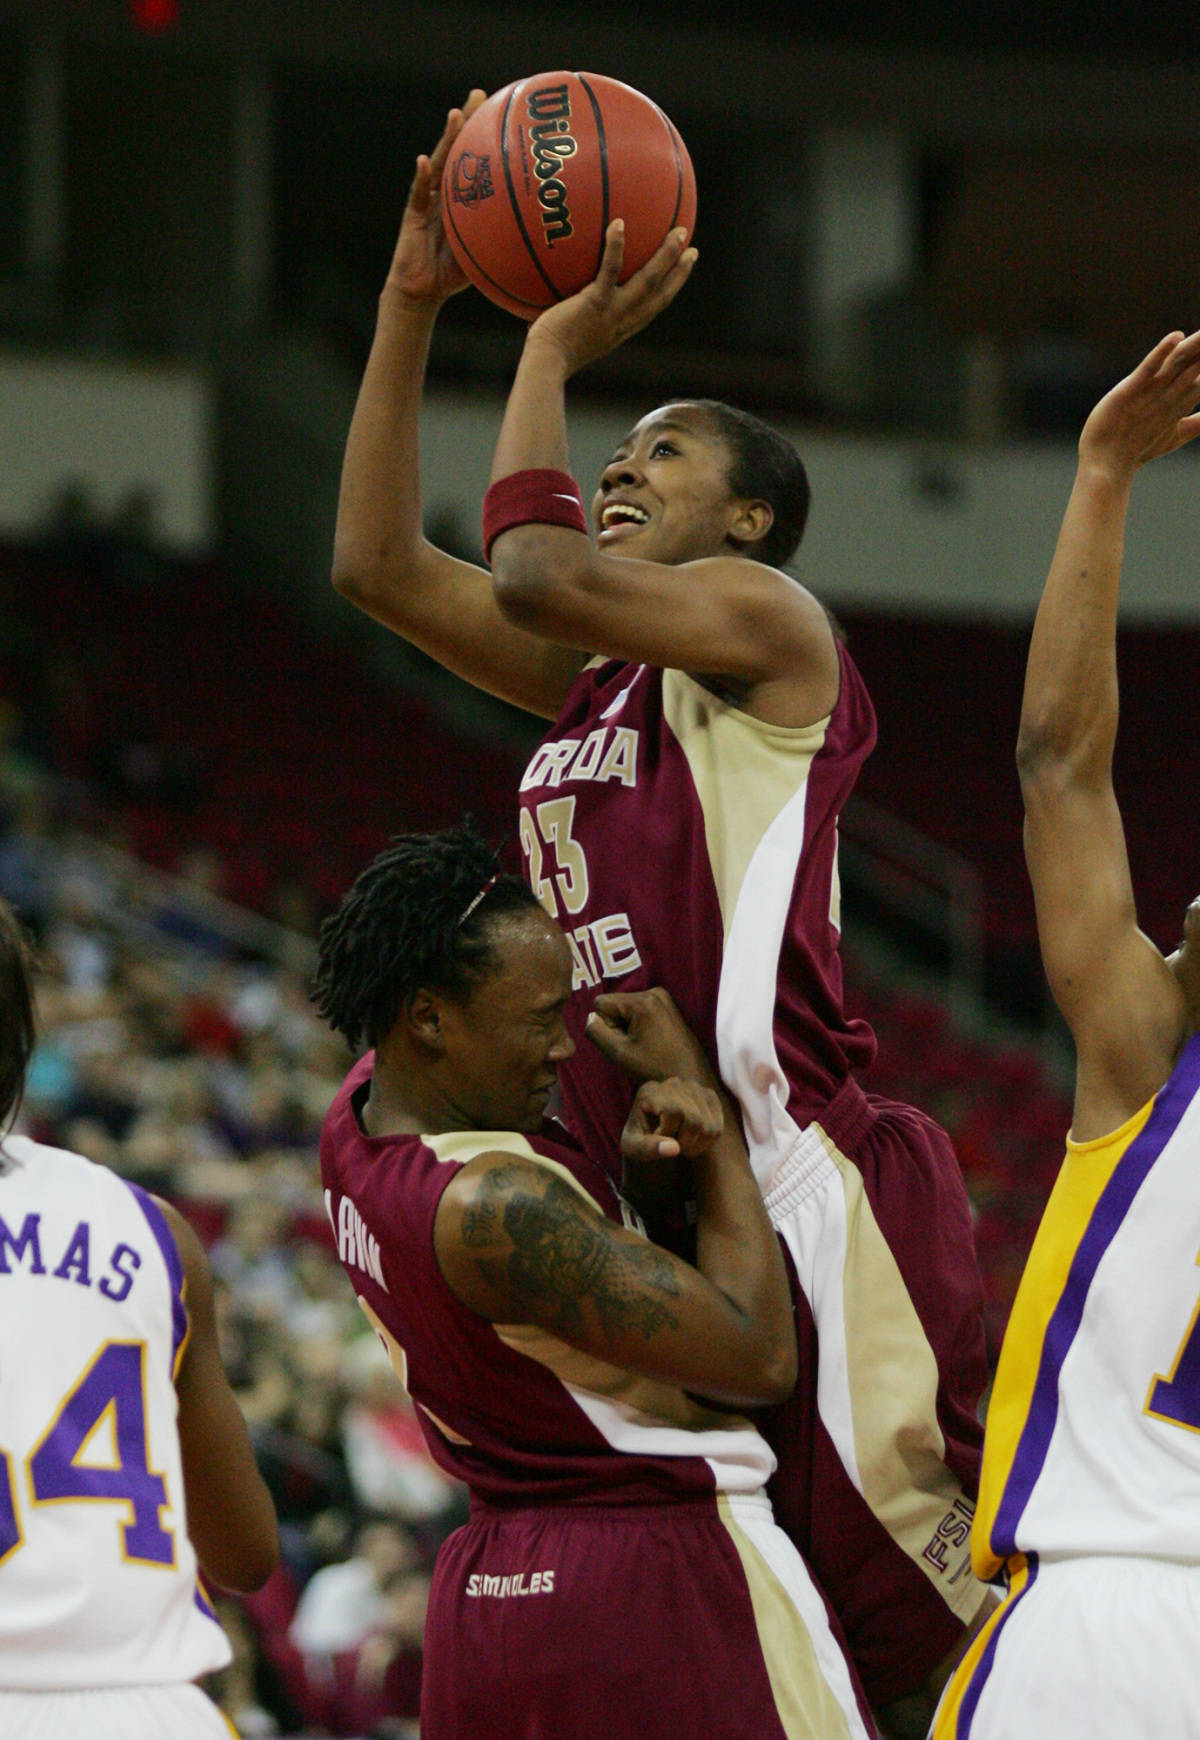 Florida State's Tiffiny Buckelew puts up a shot as she runs into teammate Alysh Harvin during the first half of a regional semifinal against Louisiana State in the NCAA women's basketball tournament in Fresno, Calif., Saturday, March 24, 2007.(AP Photo/Gary Kazanjian)